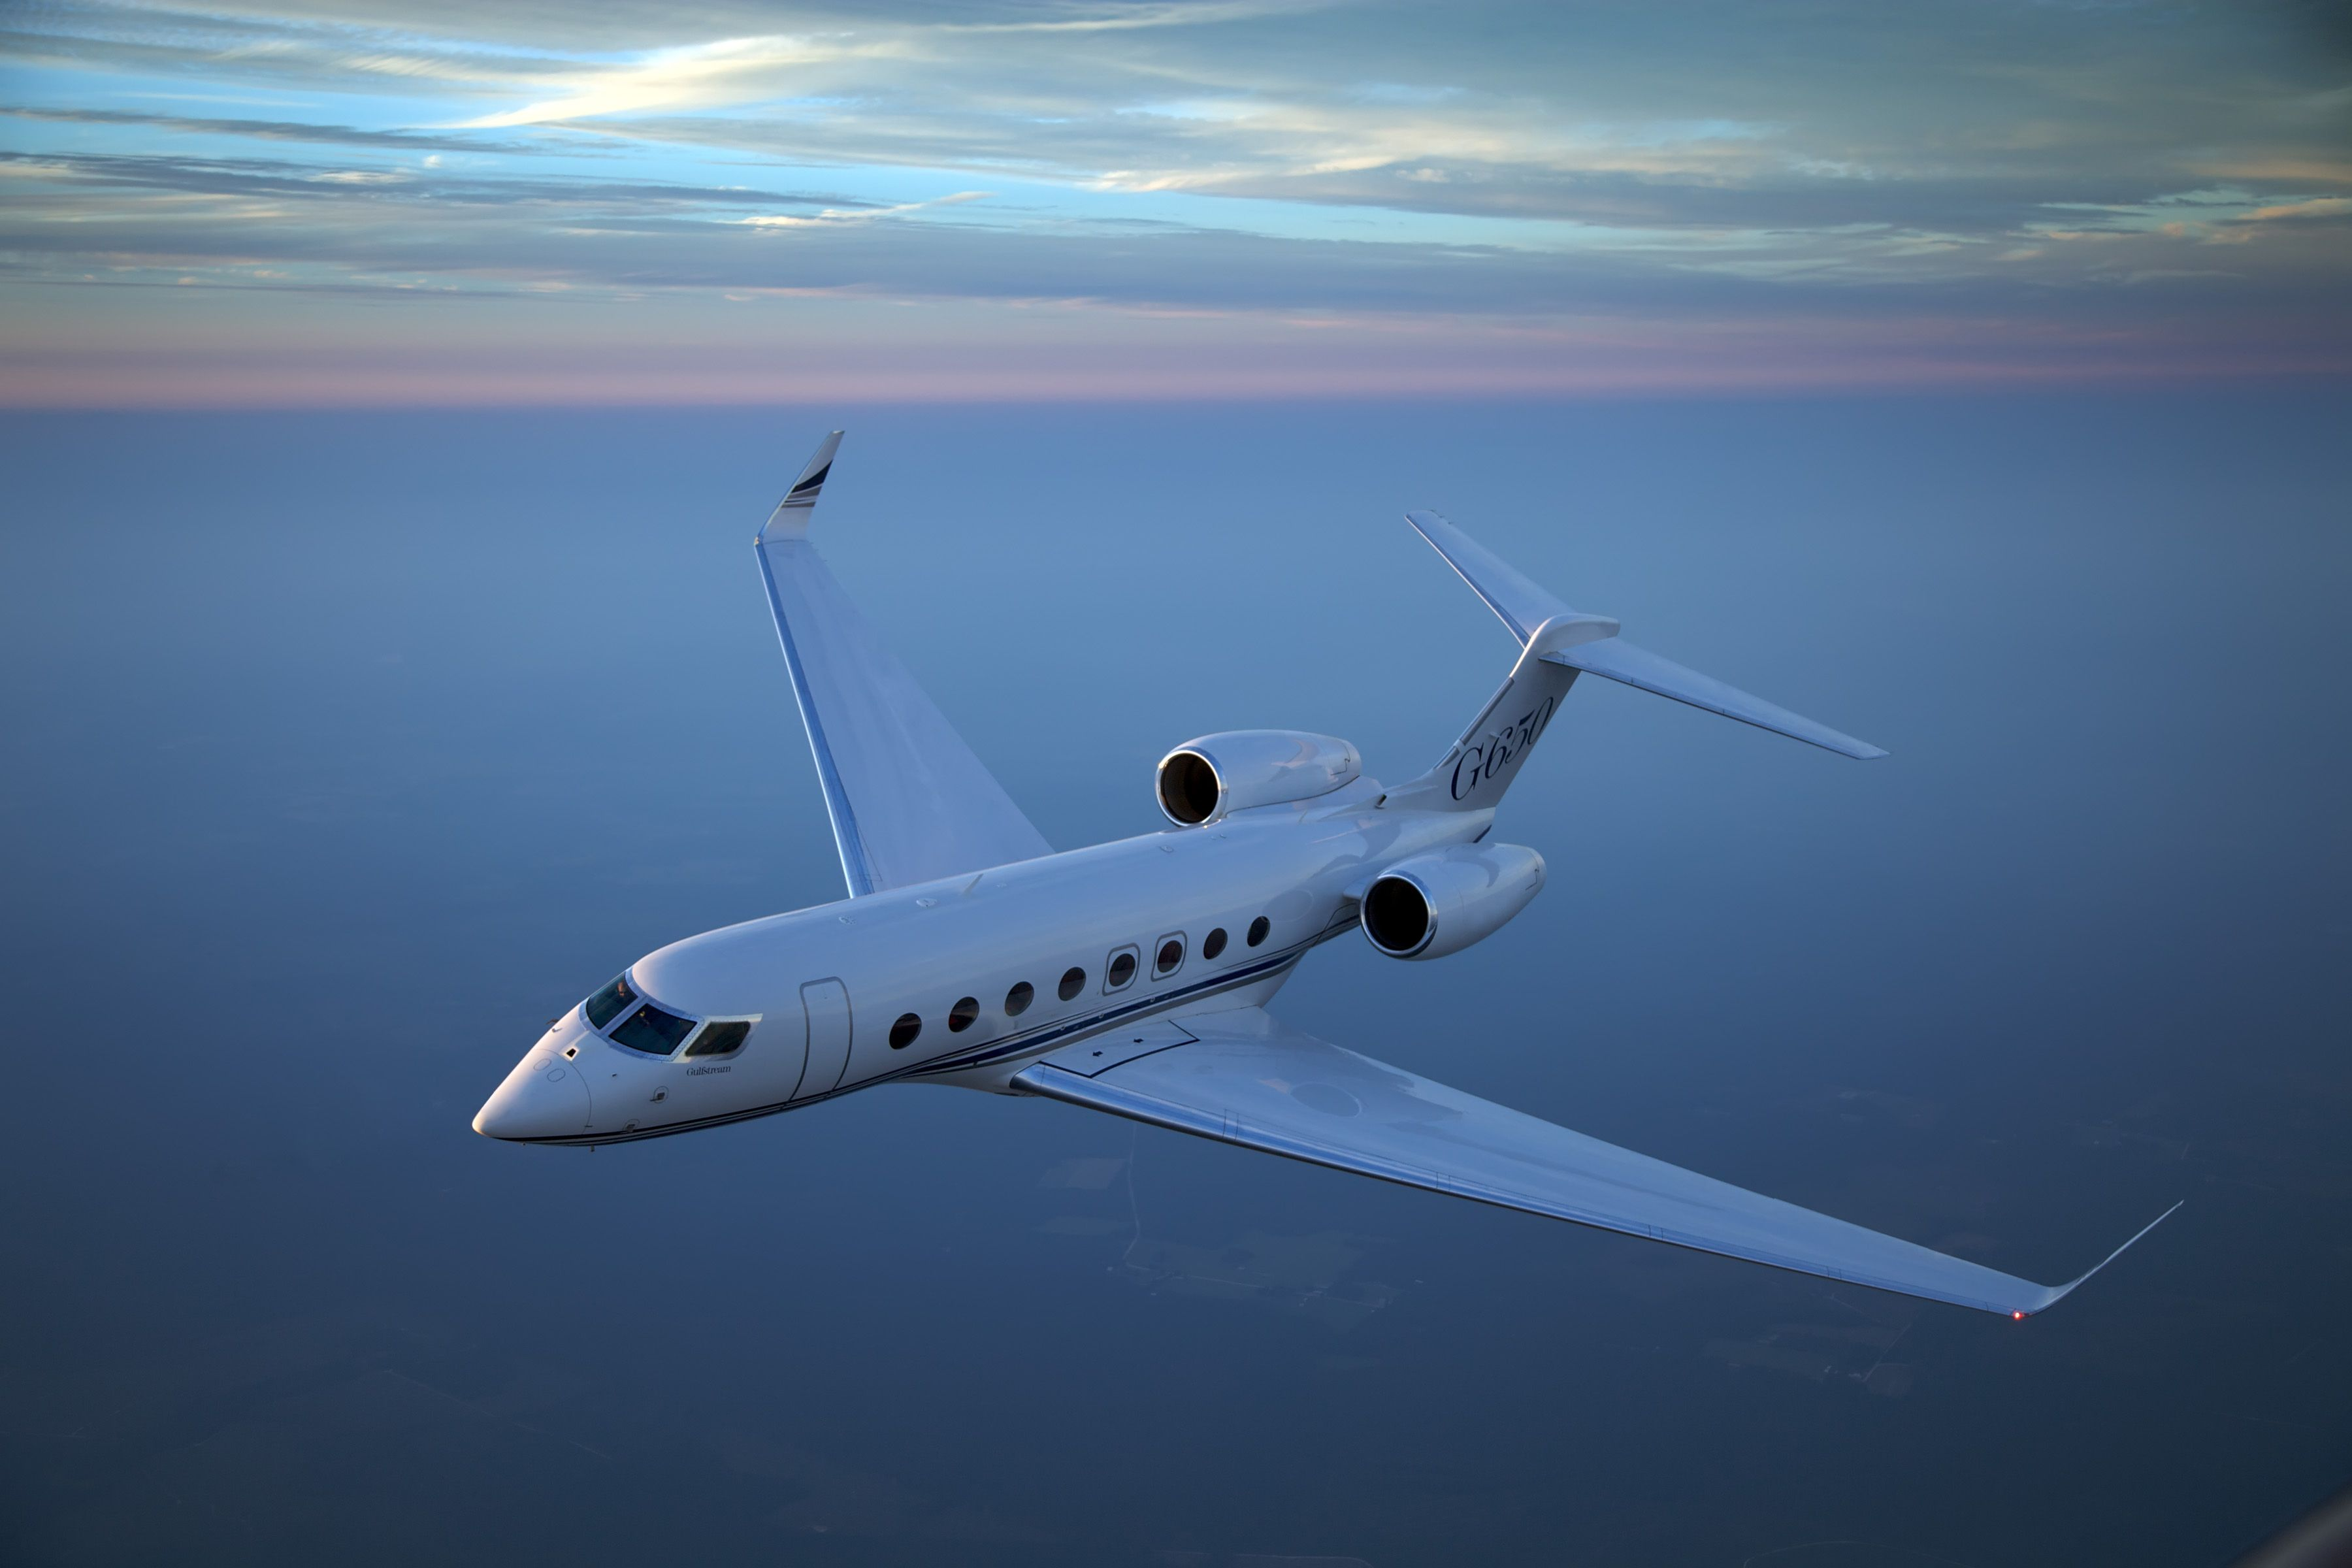 New record breaker and most efficient business jet in the world made by gulfstream aerospace corp